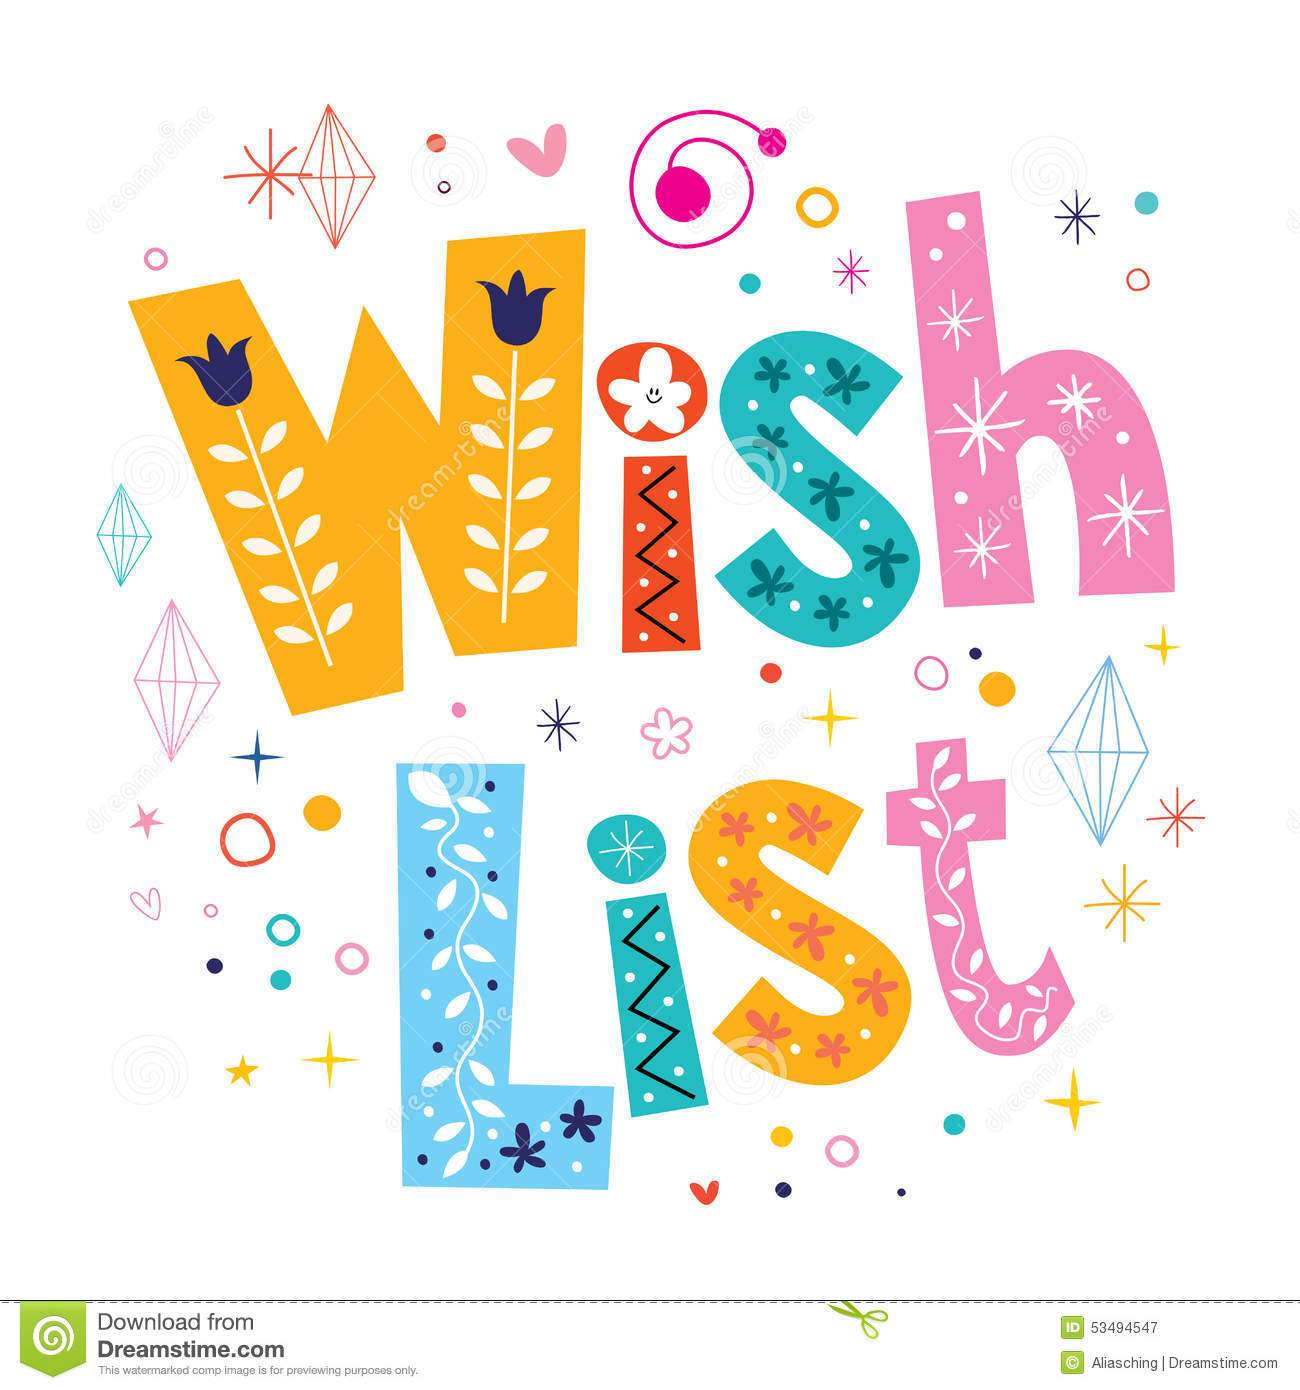 Wishlist clipart royalty free library Wishlist clipart 7 » Clipart Portal royalty free library